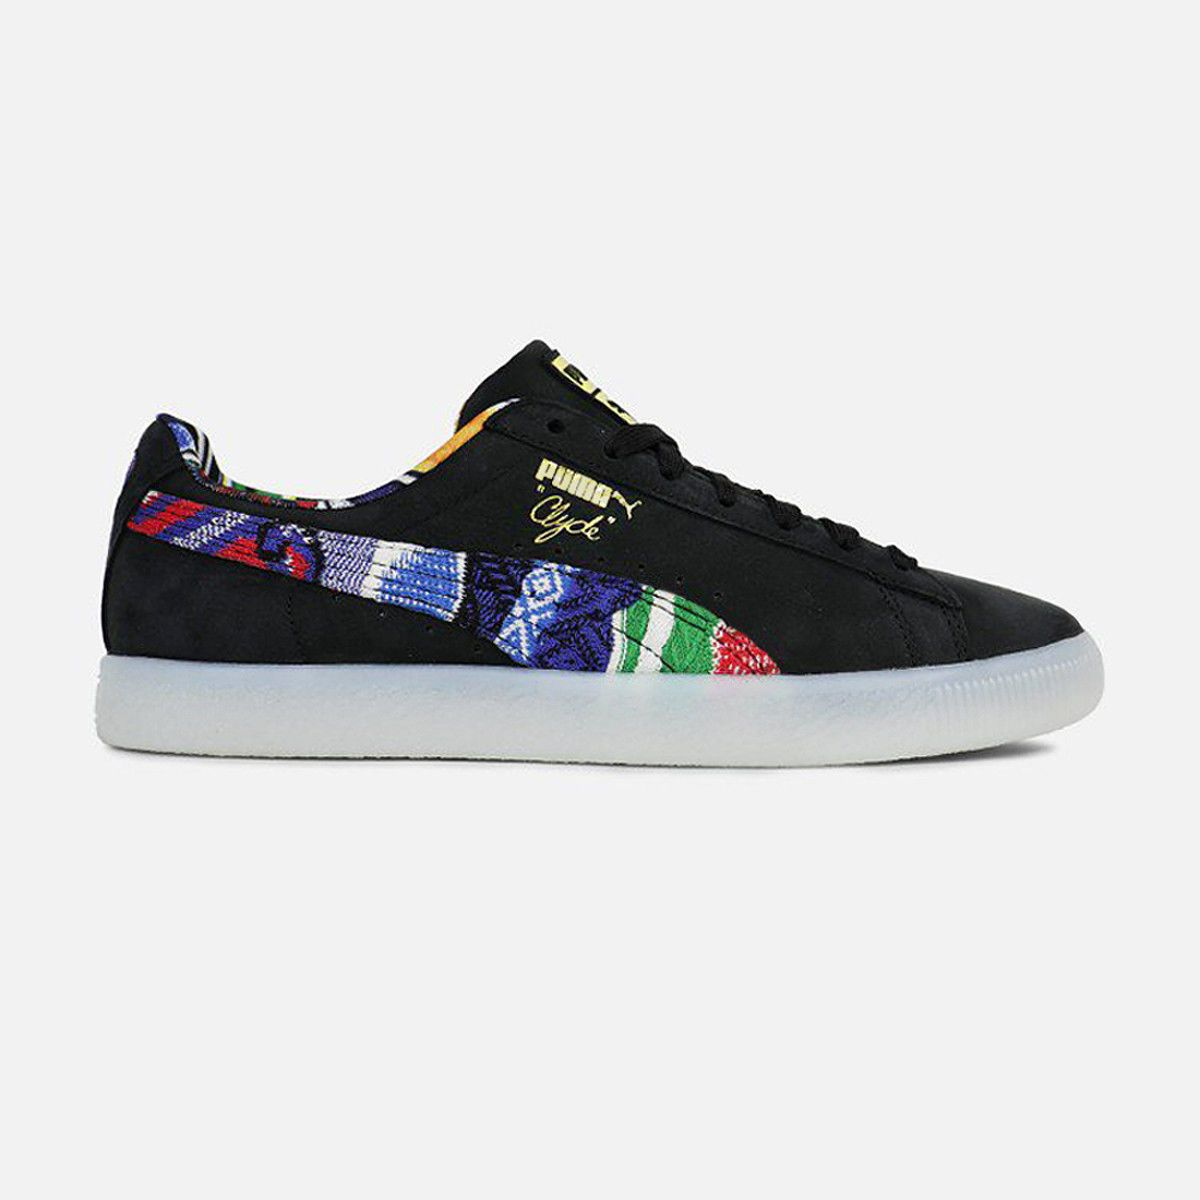 best sneakers 0299f 68786 Details about PUMA COOGI SWEATER CLYDE MULTI COLOR 364908-01 ...